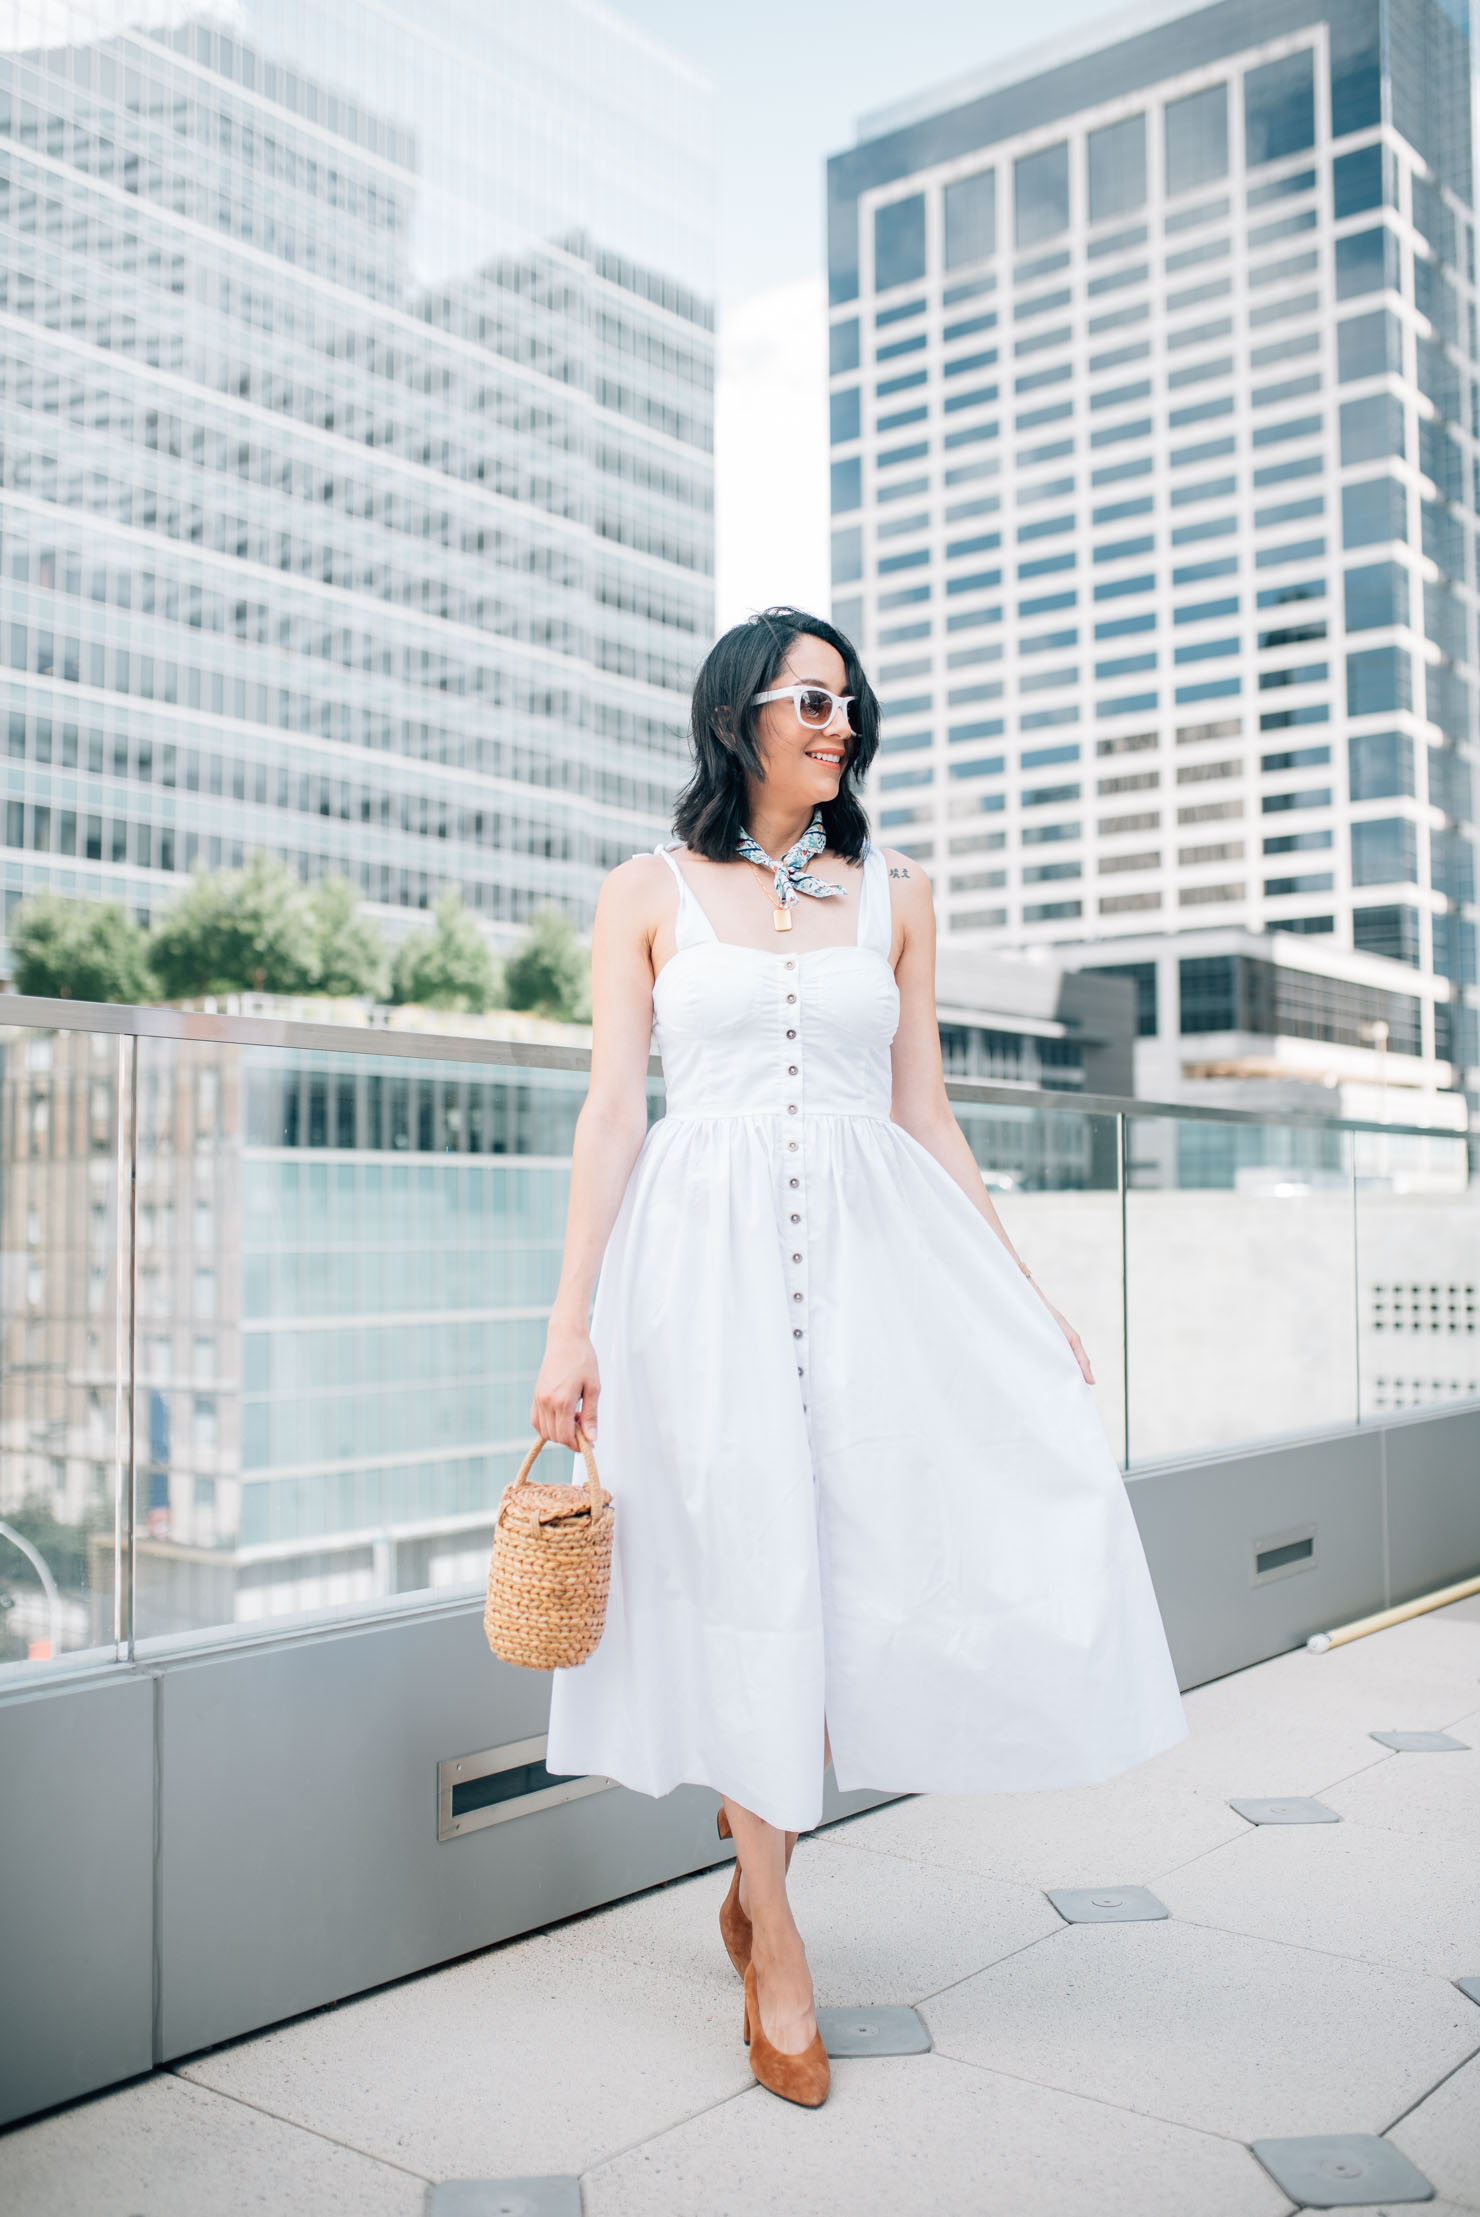 Fashion blogger Lilly Beltran wearing white for summer in a Chicwish midi length dress, brown pumps and basket bag for a fresh summer look.